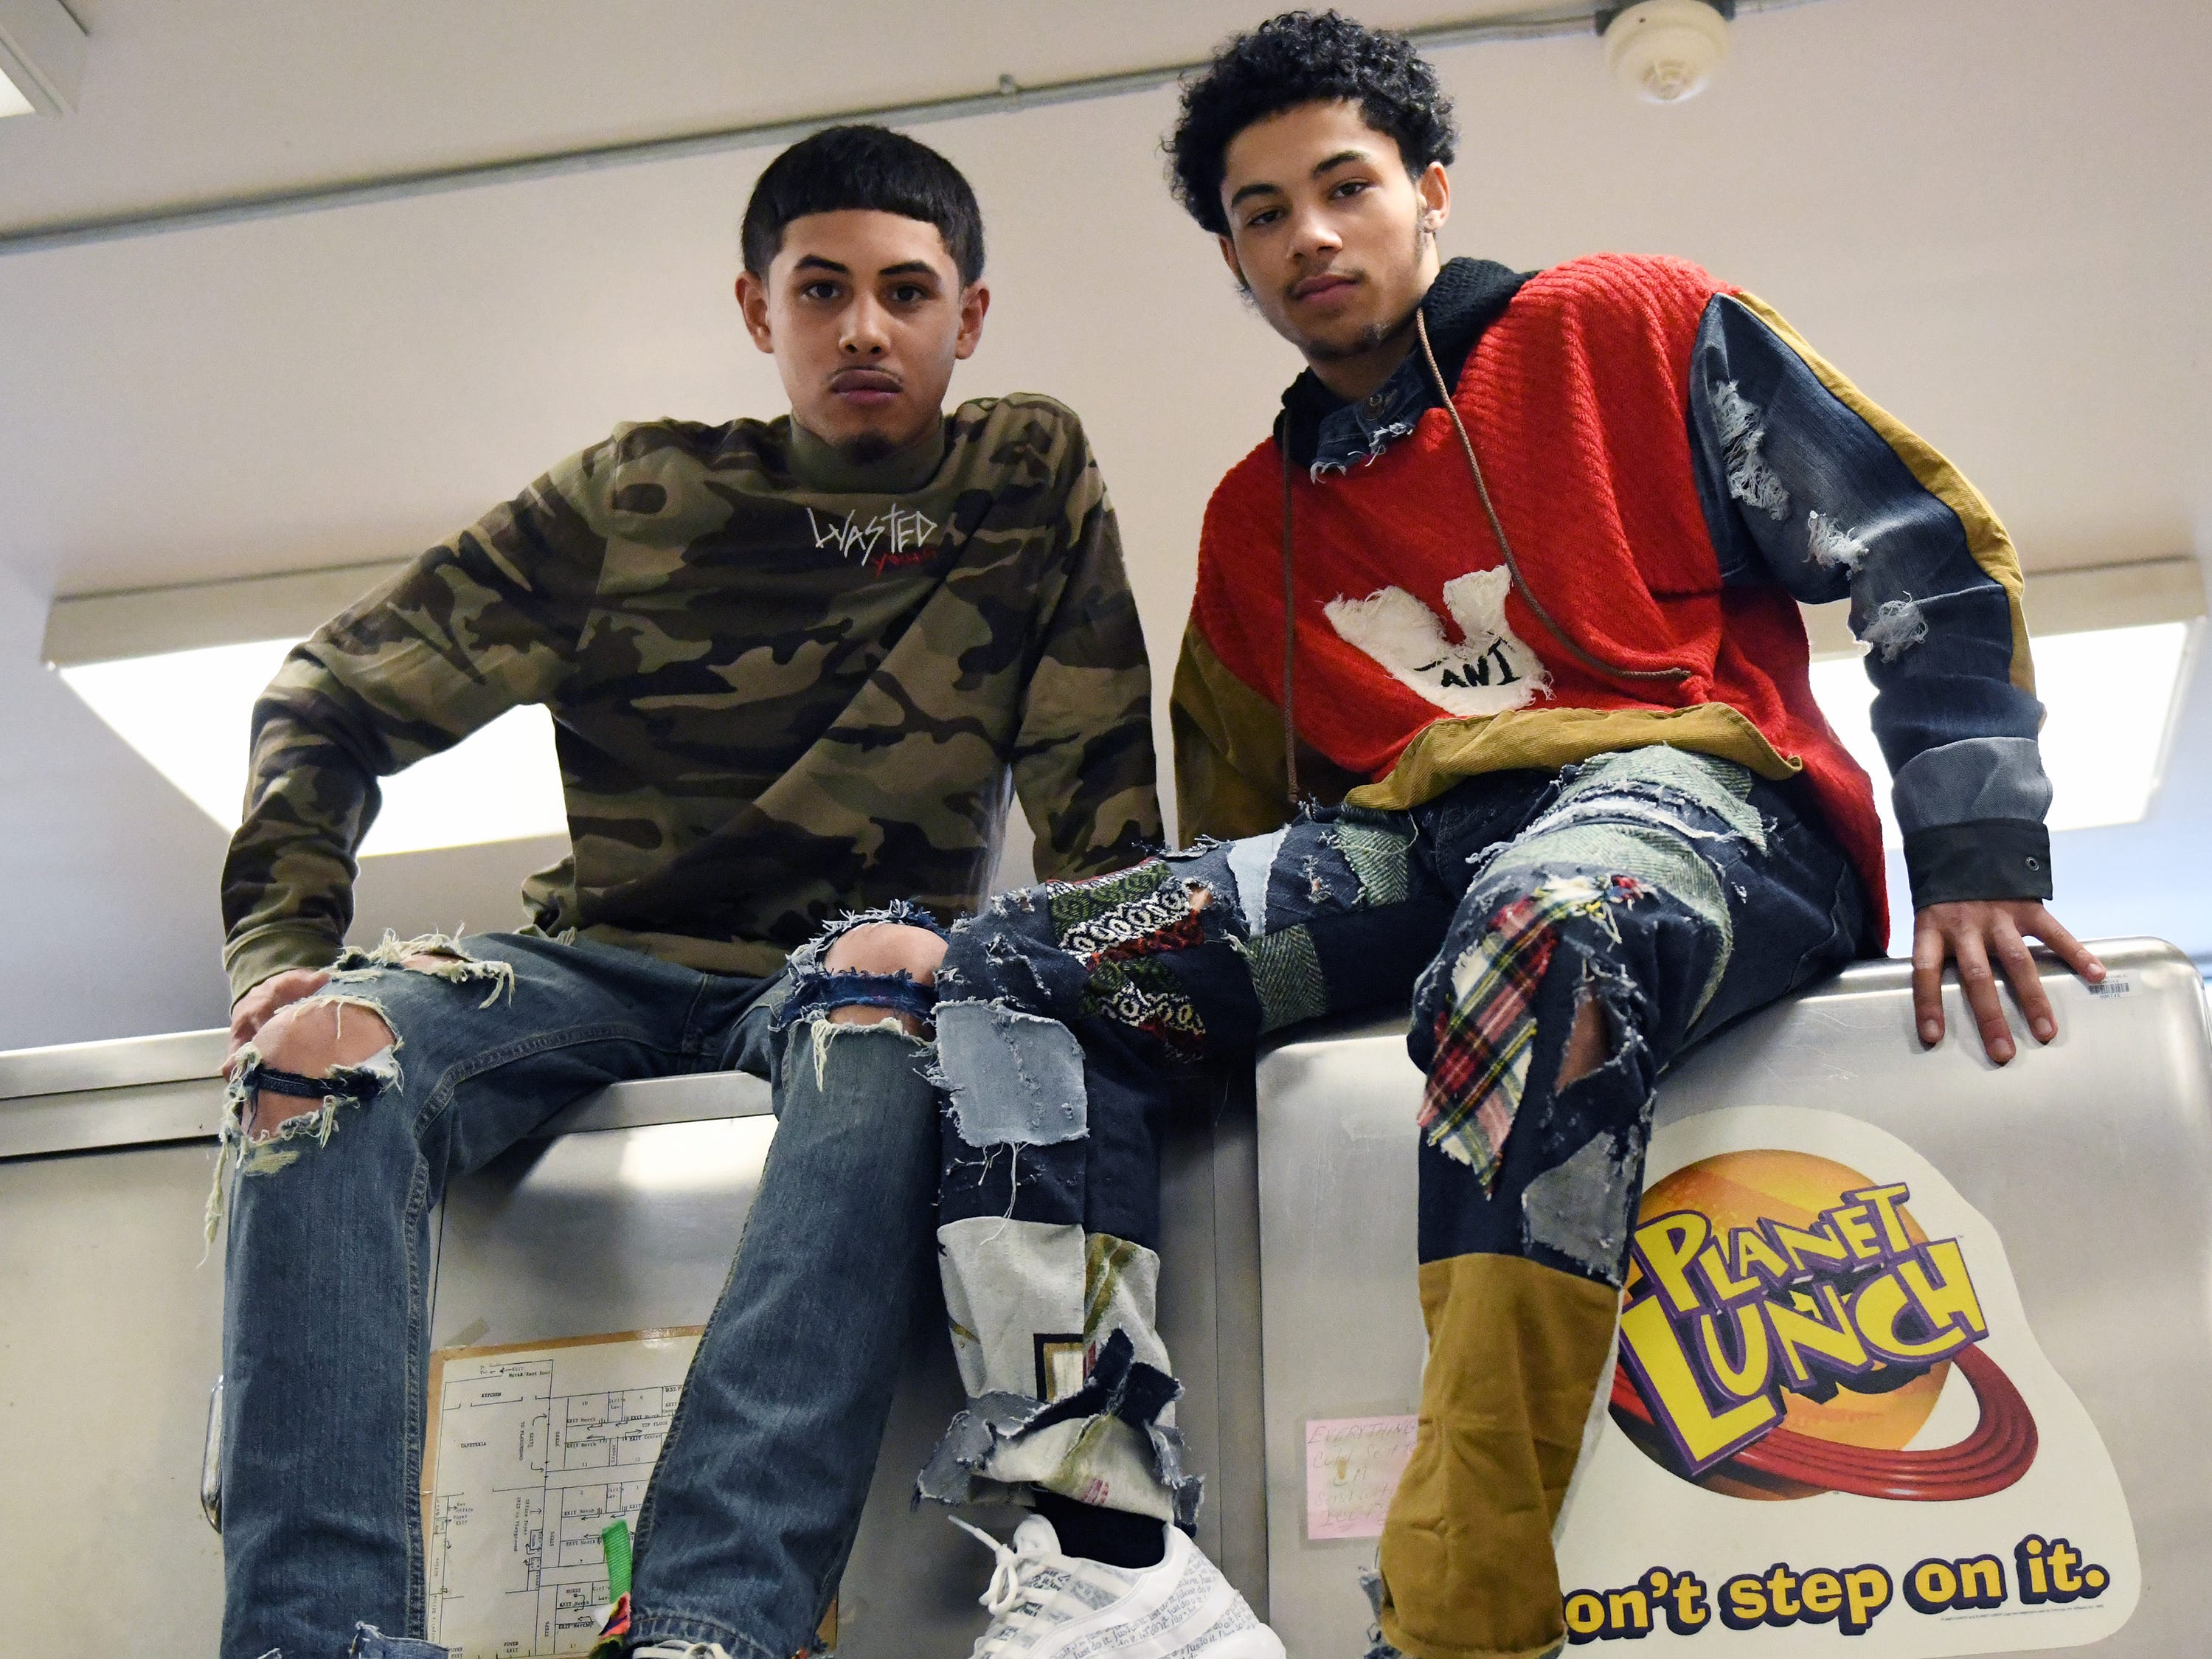 Fabricio Lobo (left) shows off some of his fashion line with his friend Zae Bogan at Cunningham Academy in Vineland on Thursday, Jan. 24, 2019.